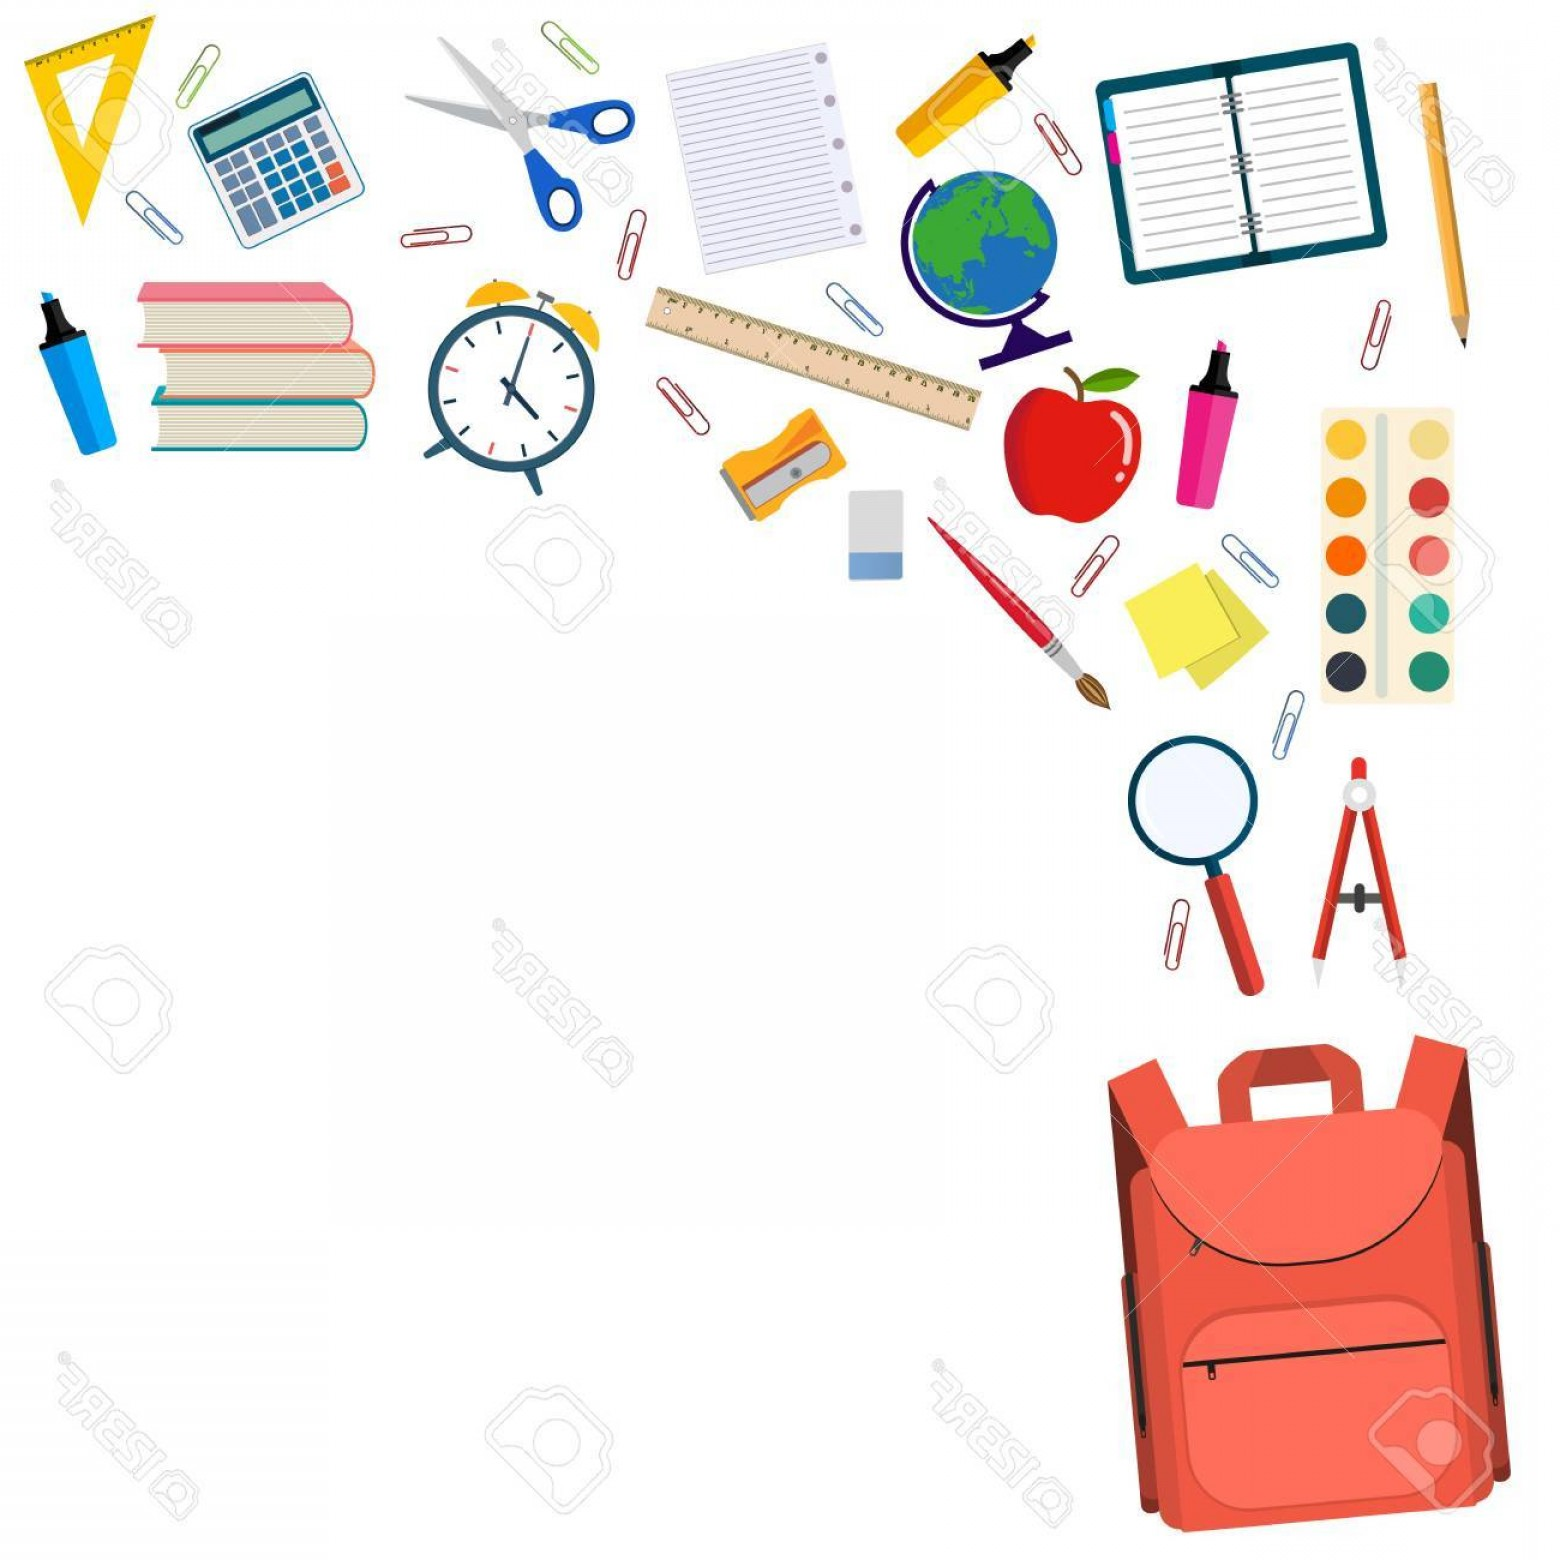 Individual School Supplies Vector: Photostock Vector Back To School Background With School Supplies In School Bag Big Set Vector Illustration In Flat Des